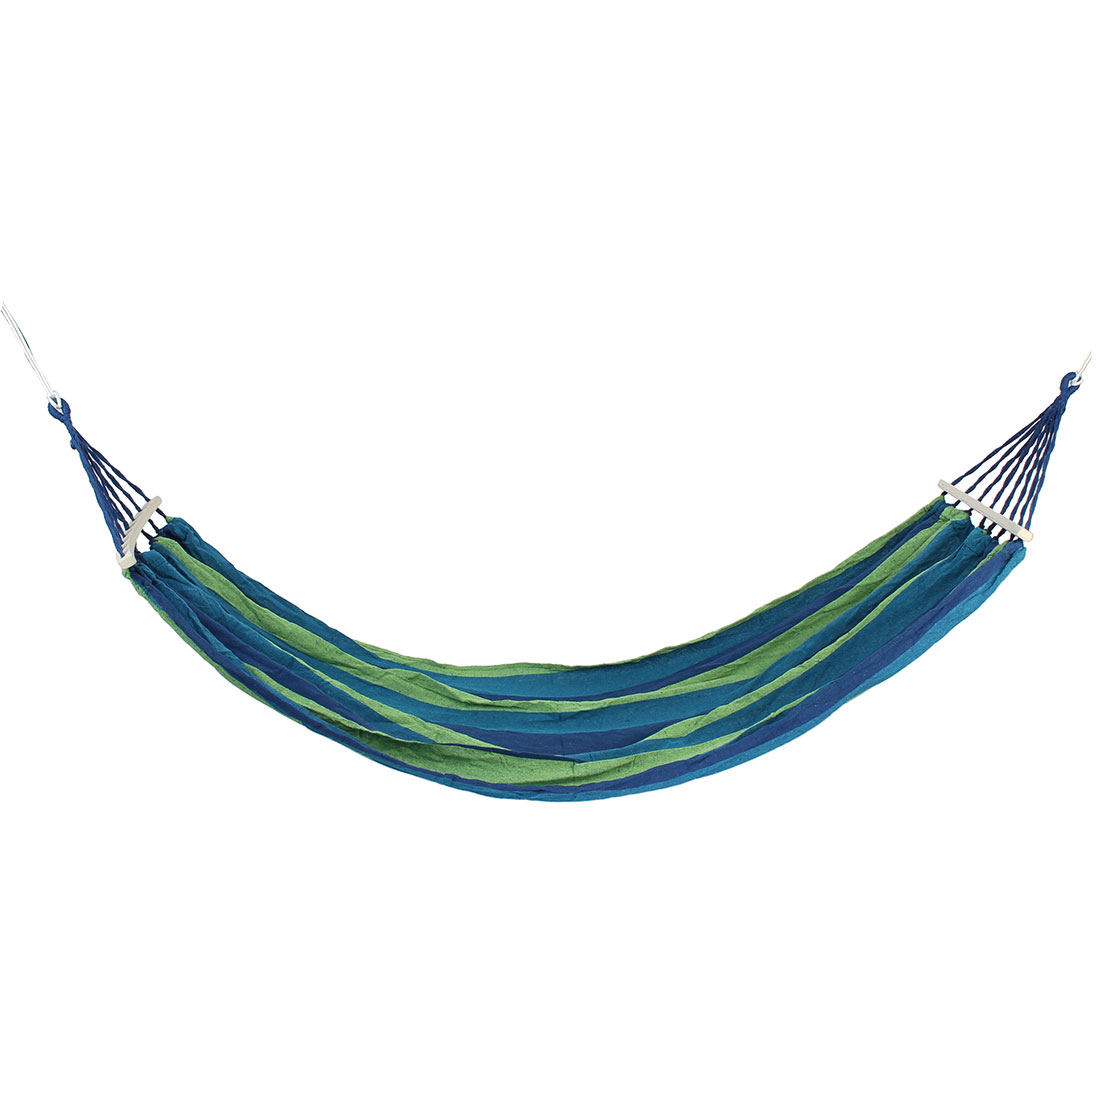 Outdoor Camping Travel Canvas Striped Pattern Rope Swing Sleeping Bed Double Parachute Hammock